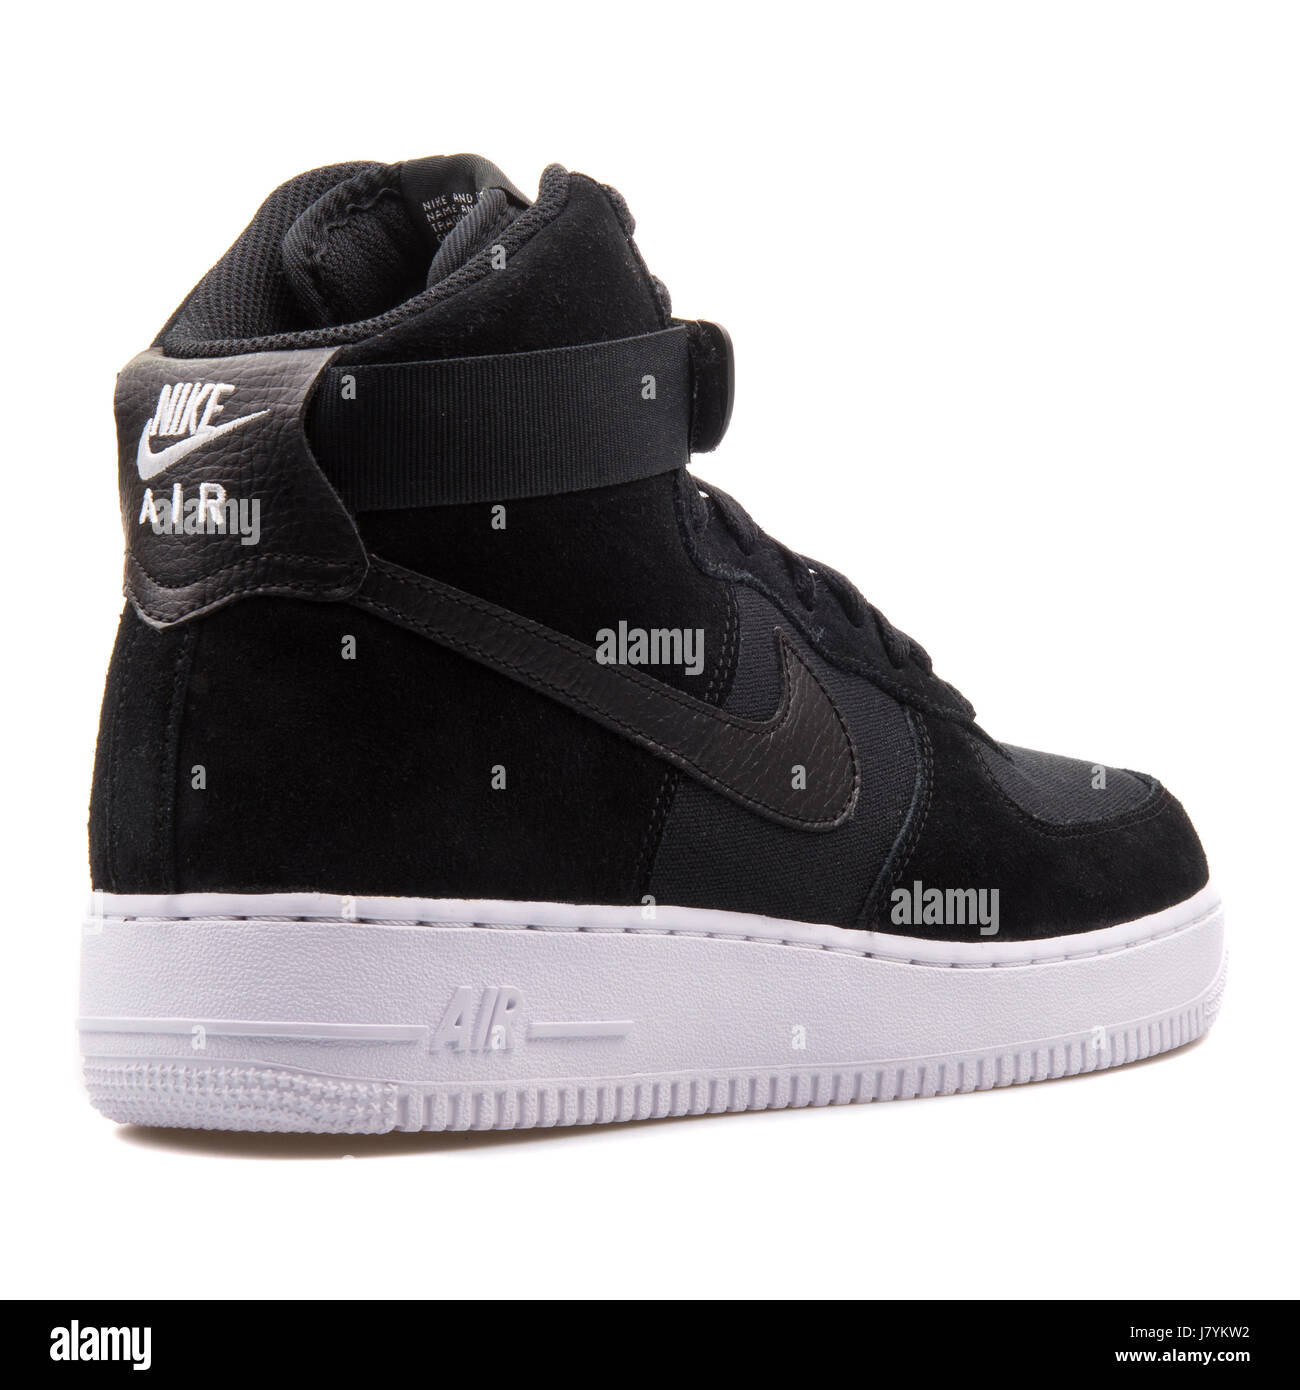 huge discount f9517 28490 Nike Air Force 1 Alto  07 hombres negros Leather Sneakers - 315121-033  Imagen